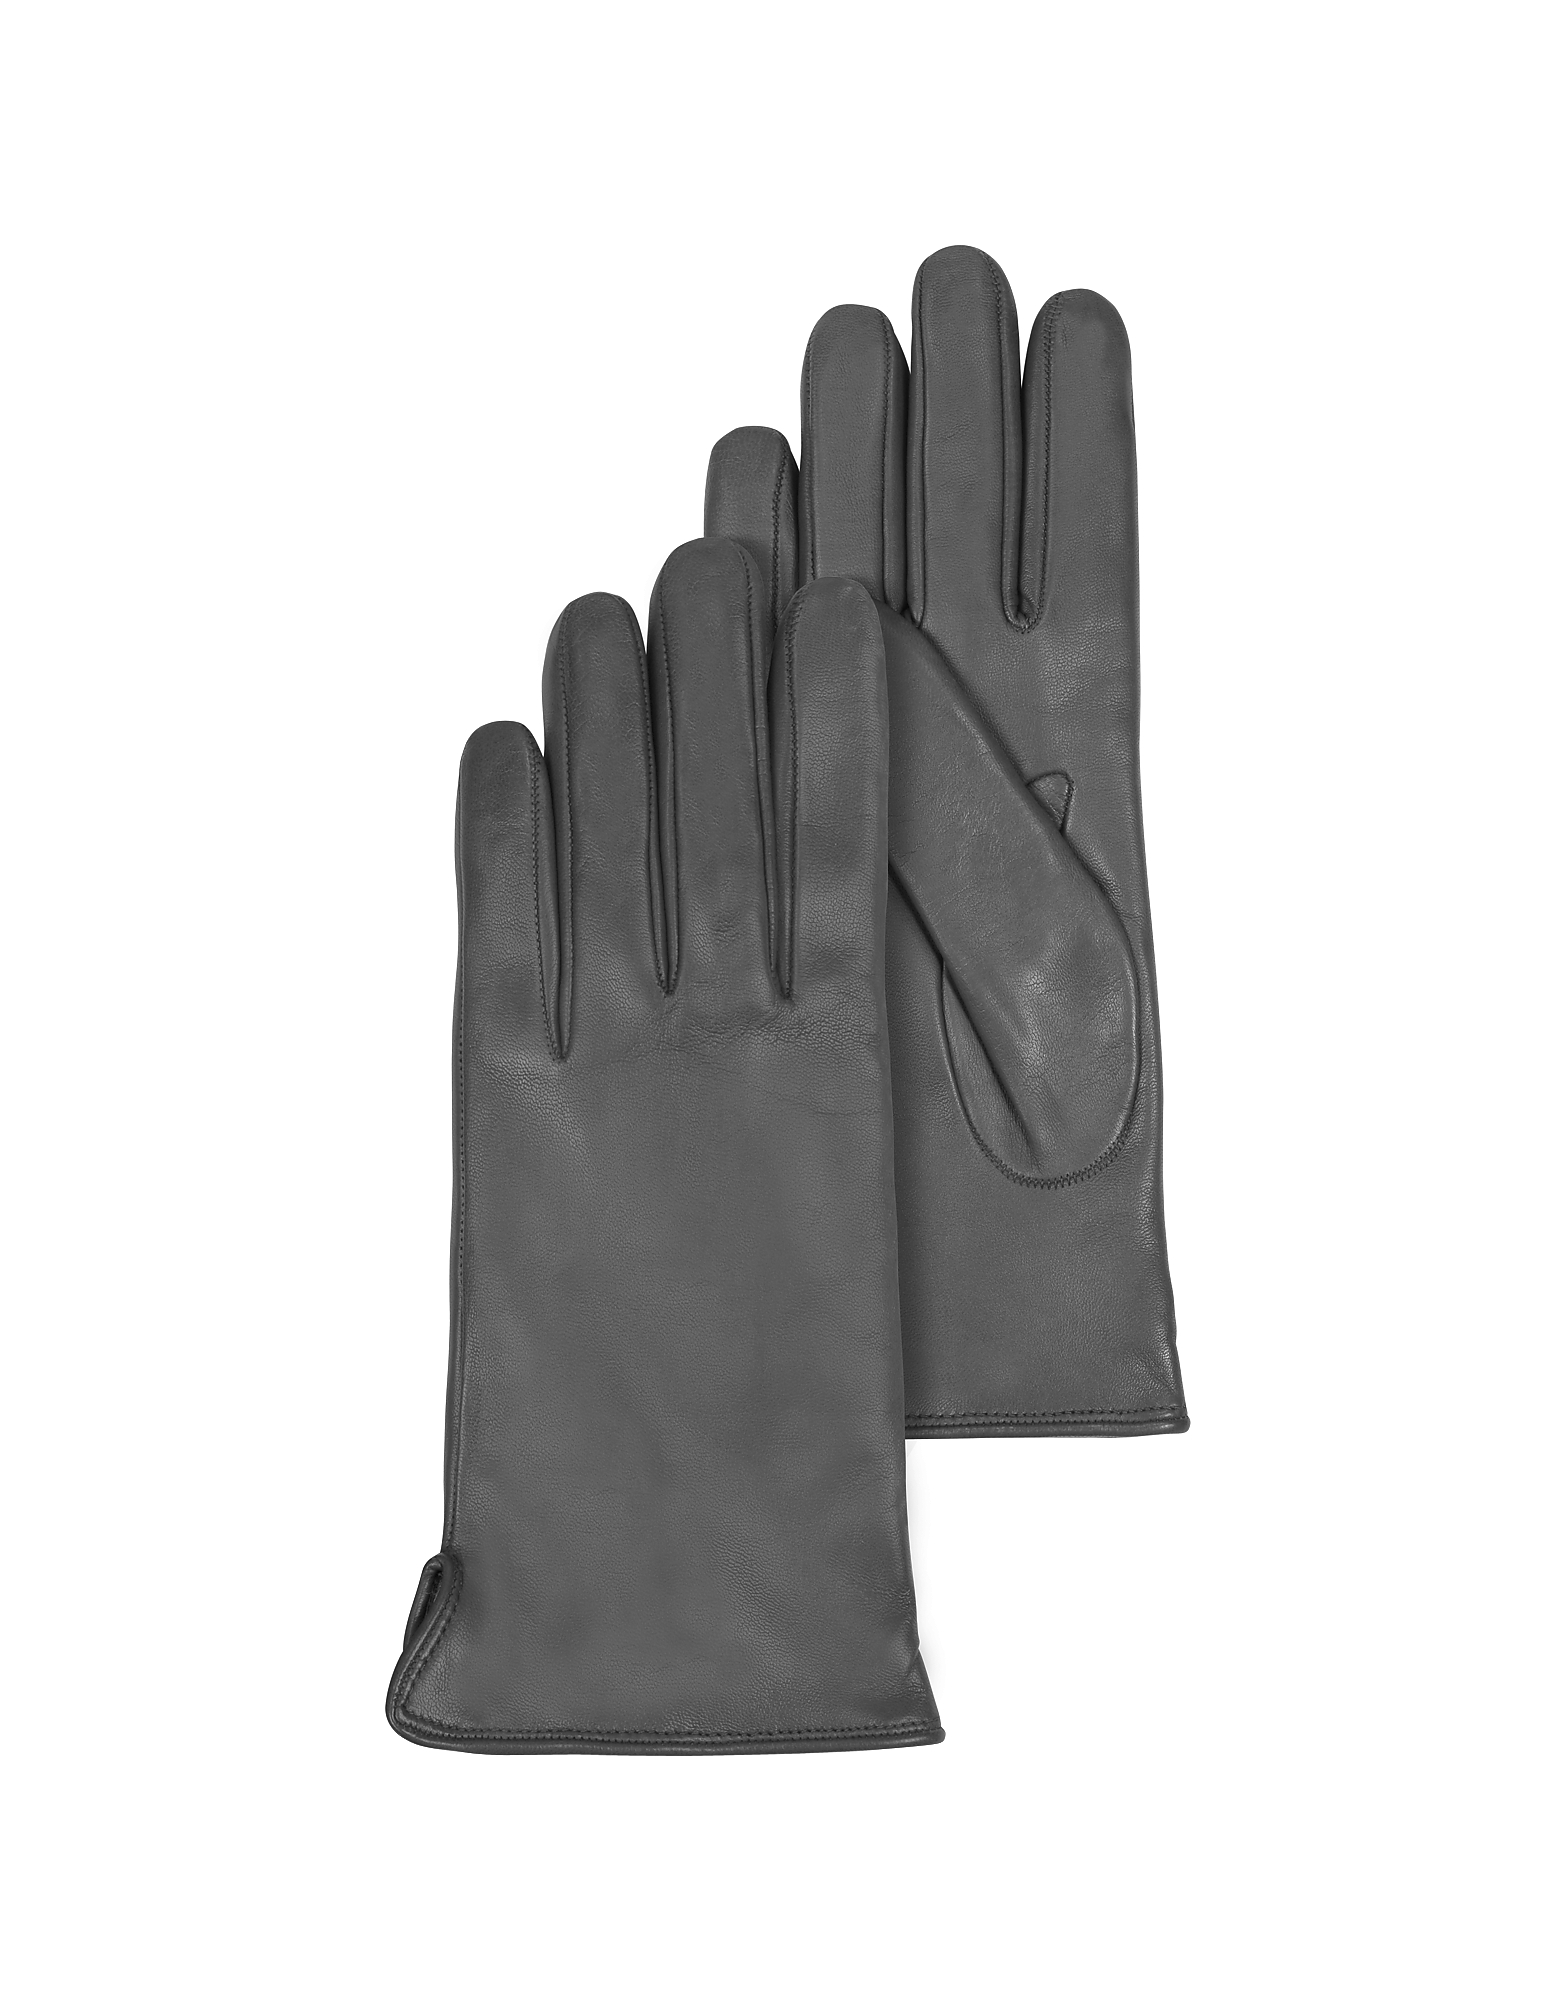 Forzieri Women's Gloves, Dark Gray Leather Women's Gloves w/Cashmere Lining